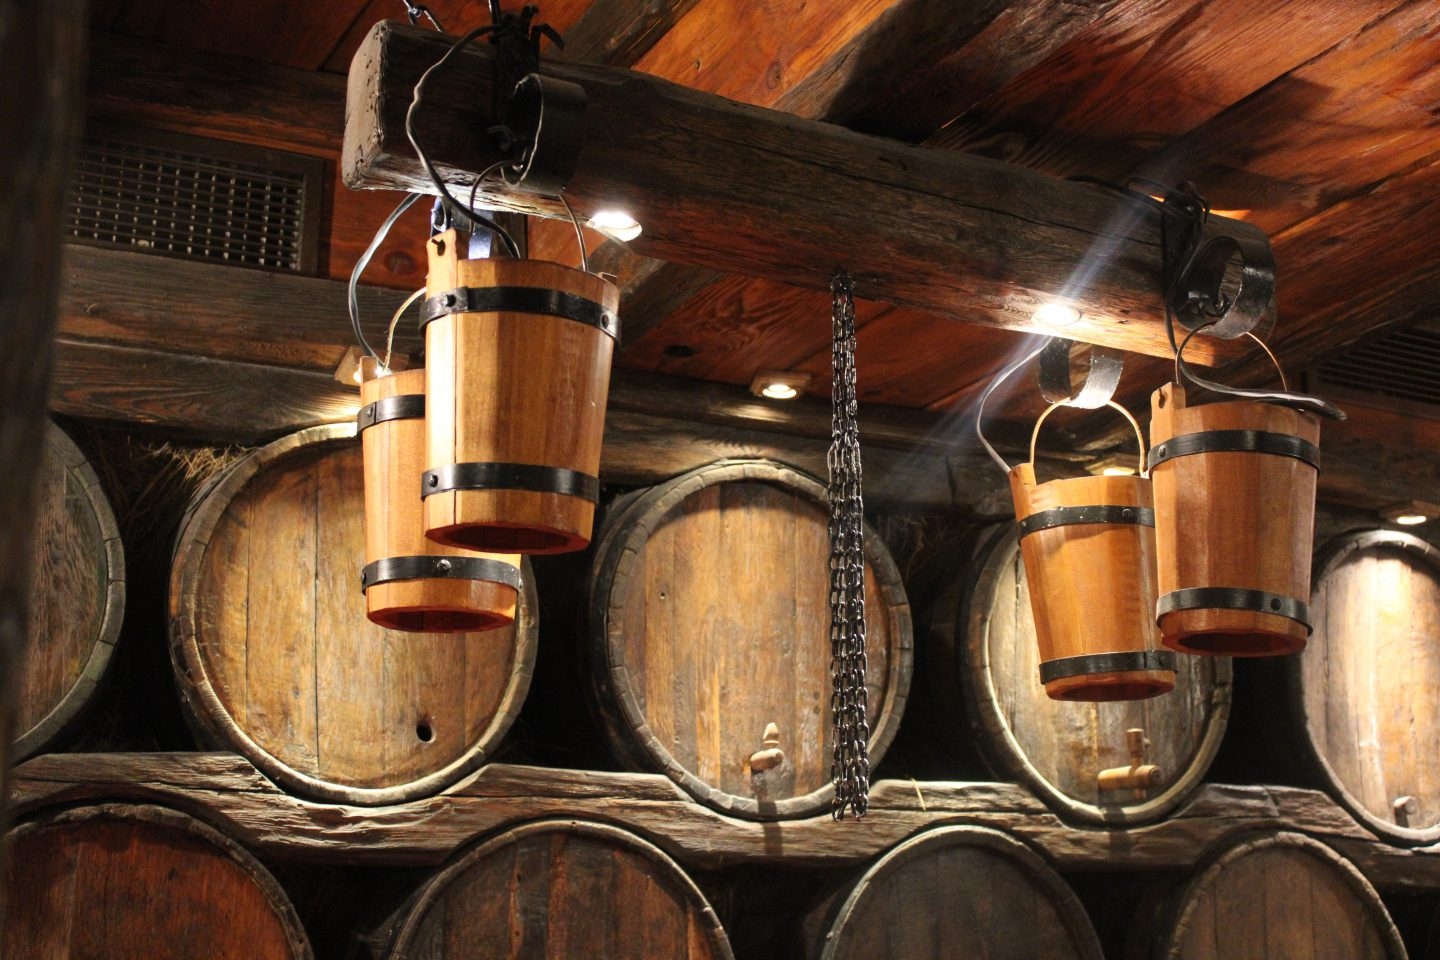 traditional bulgarian food in sofia: inside a restaurant where wooden buckets are hanging from the ceiling and barrels are on the wall